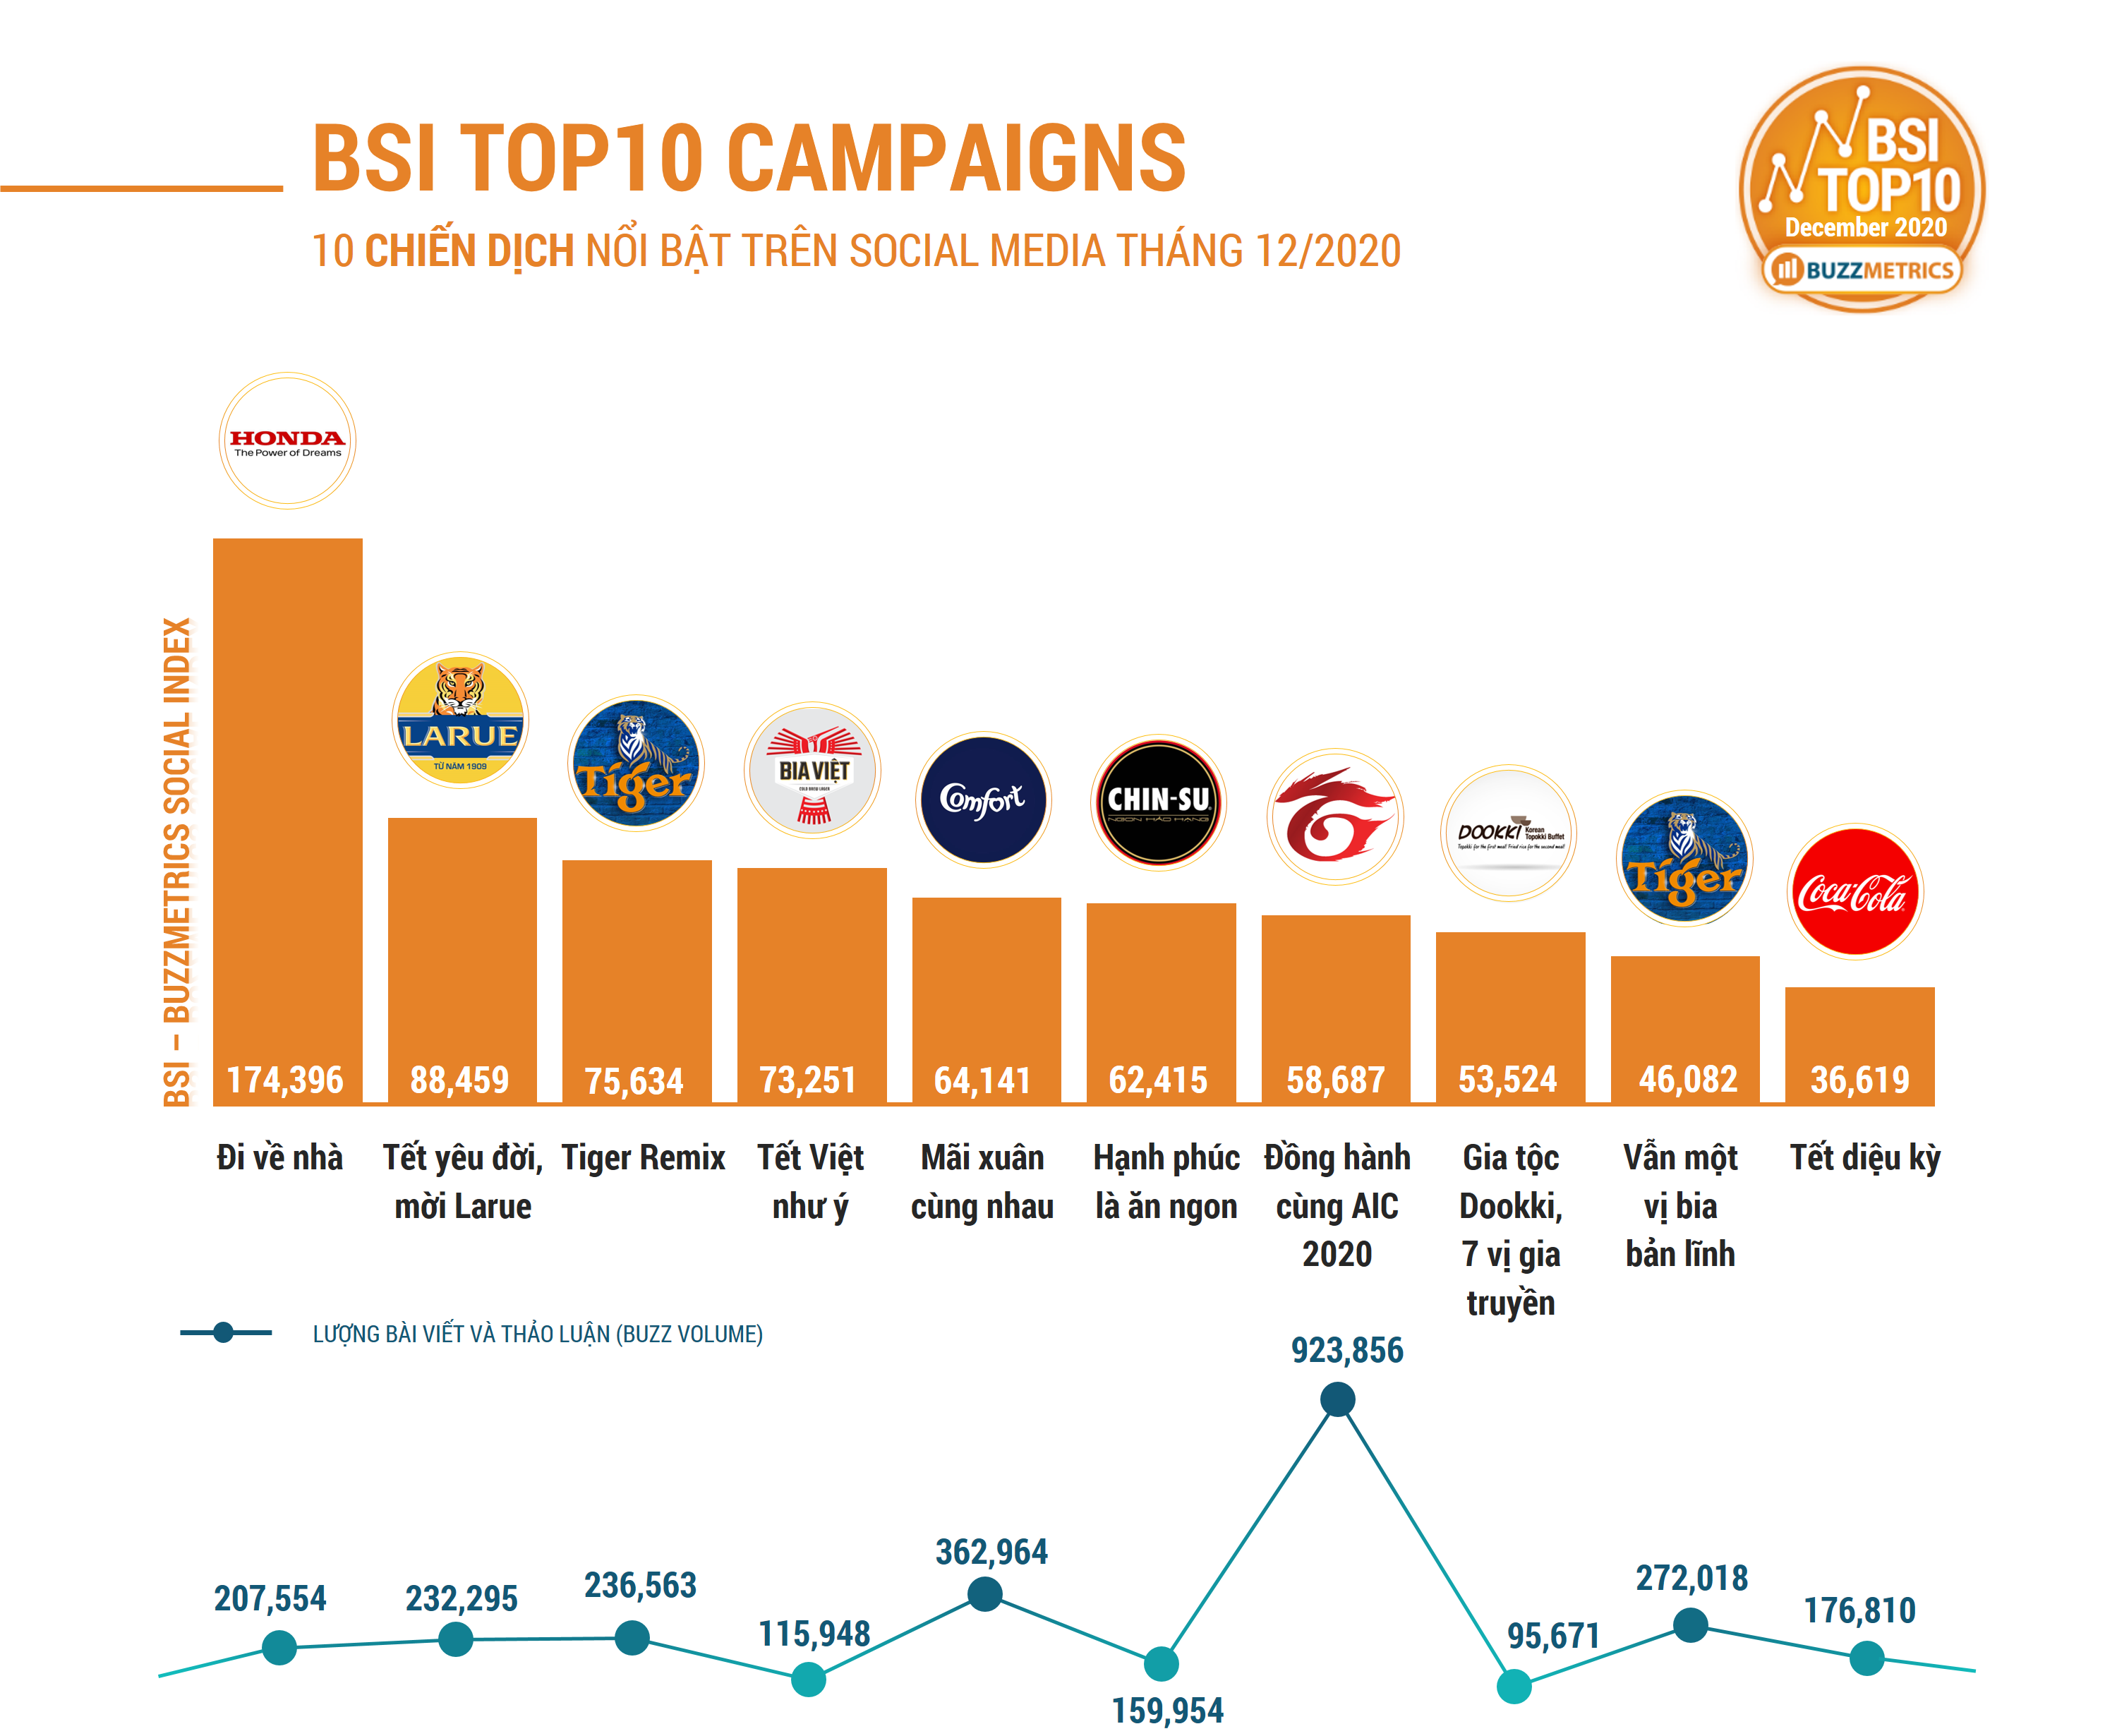 NEW_BSI TOP10 DEC 2020 CAMPAIGNS CHART 1